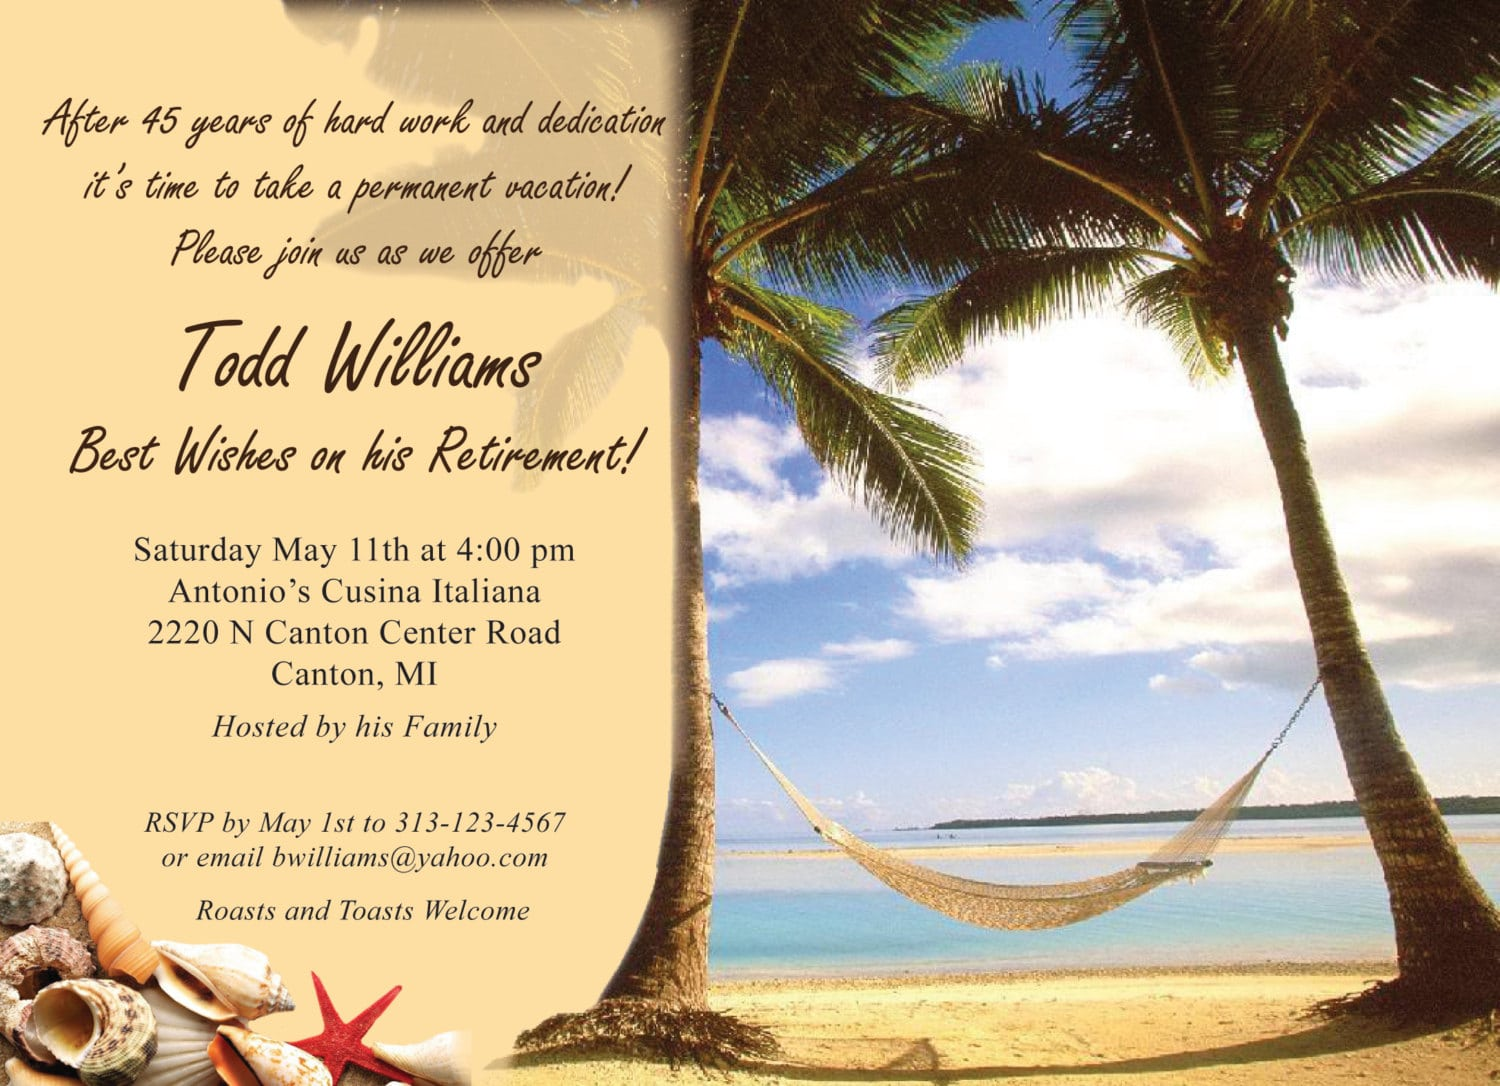 Retirement Party Invitation Sample For A Man